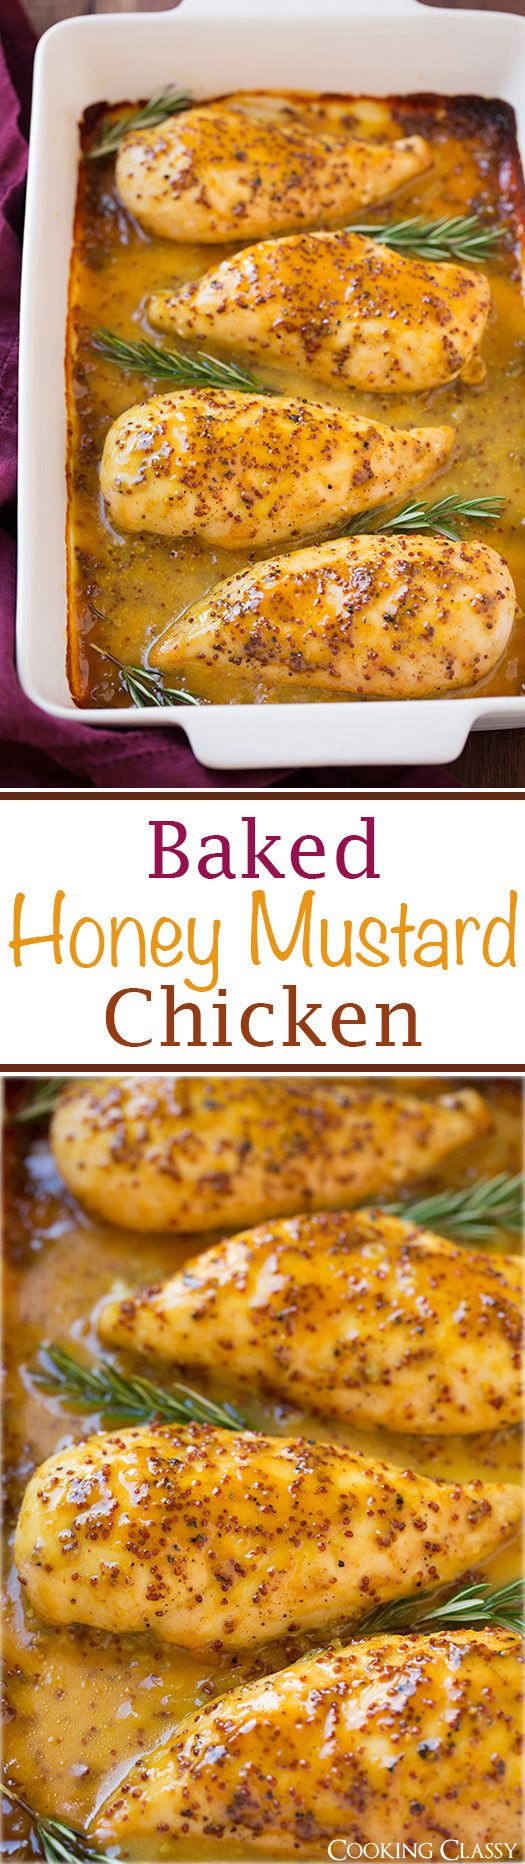 Baked Honey Mustard Chicken - this is easy, healthy and incredibly delicious!!